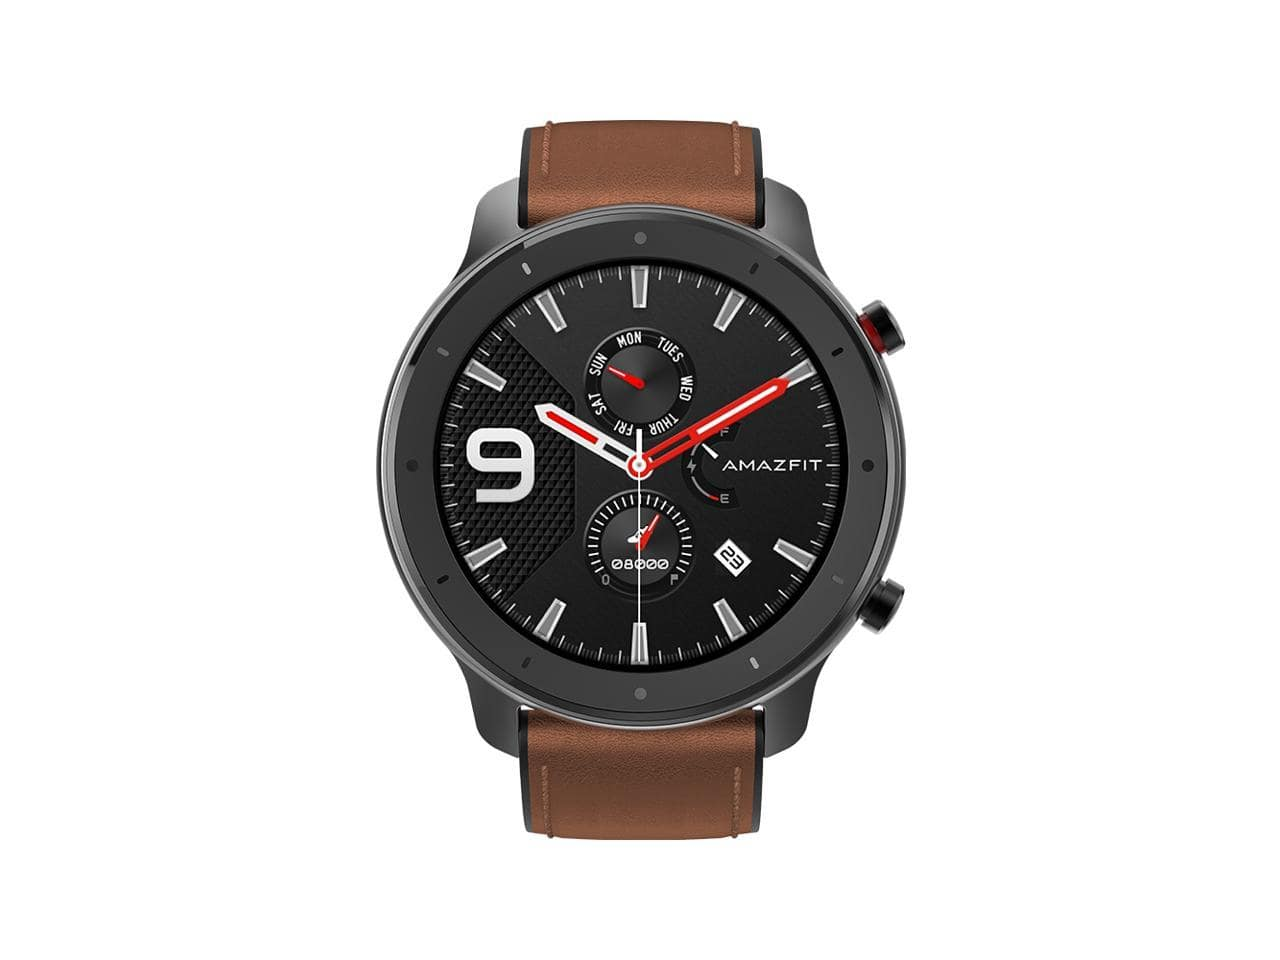 Amazfit GTR Smartwatch w GPS+GLONASS, All-Day Heart Rate Monitor, Rate and Activity Tracking, 24-Day Battery Life, 12-Sport Modes, 47mm, Aluminum Alloy $89.99